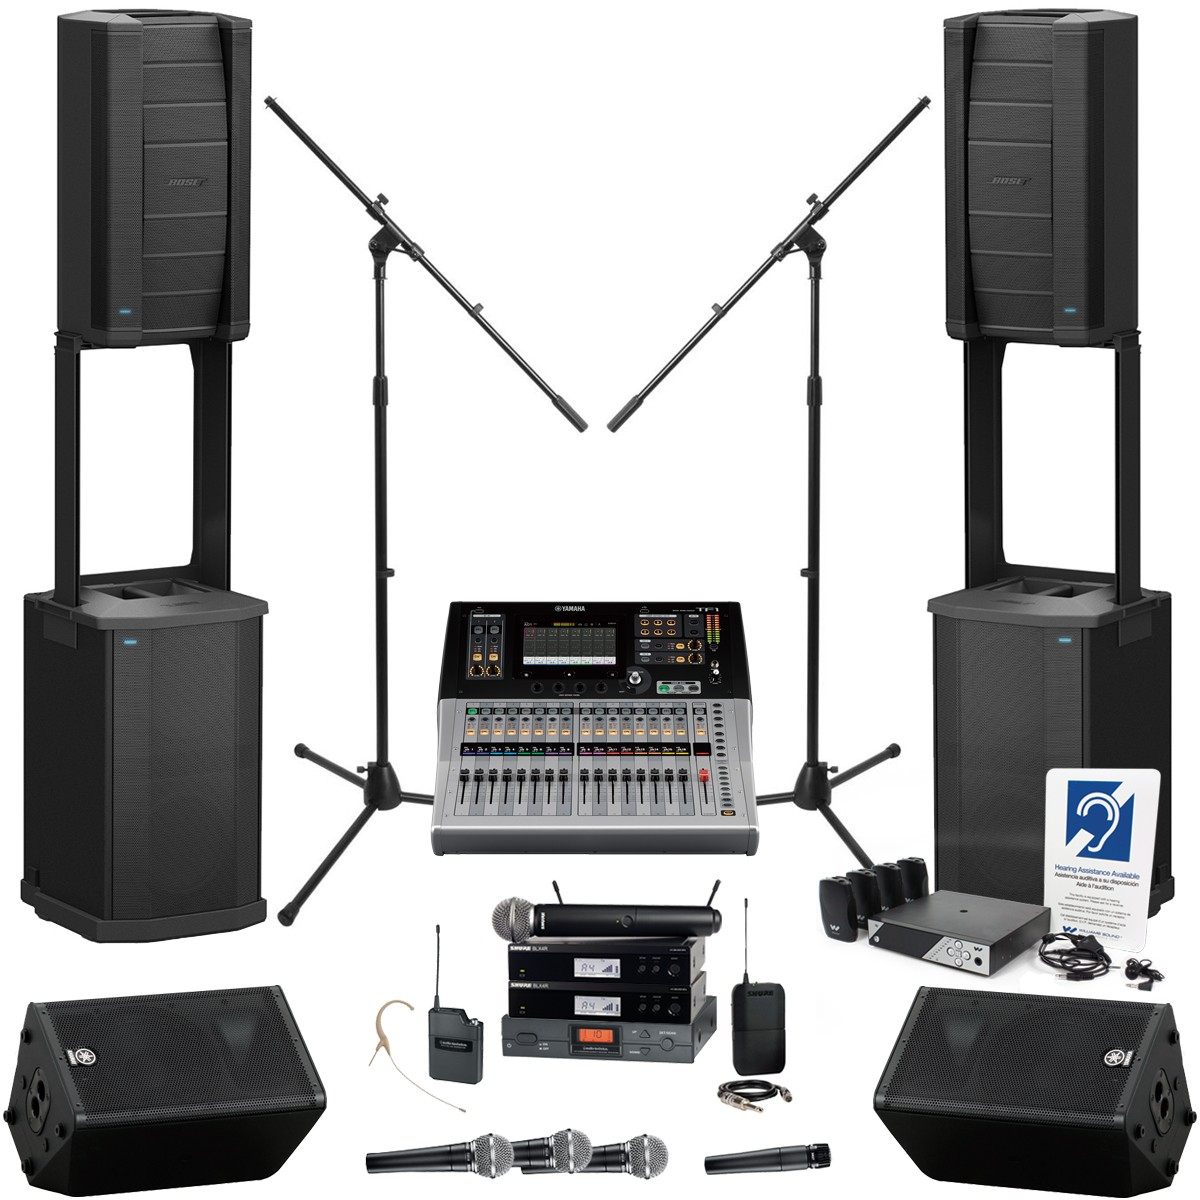 bose f1 model 812 church sound system. Black Bedroom Furniture Sets. Home Design Ideas